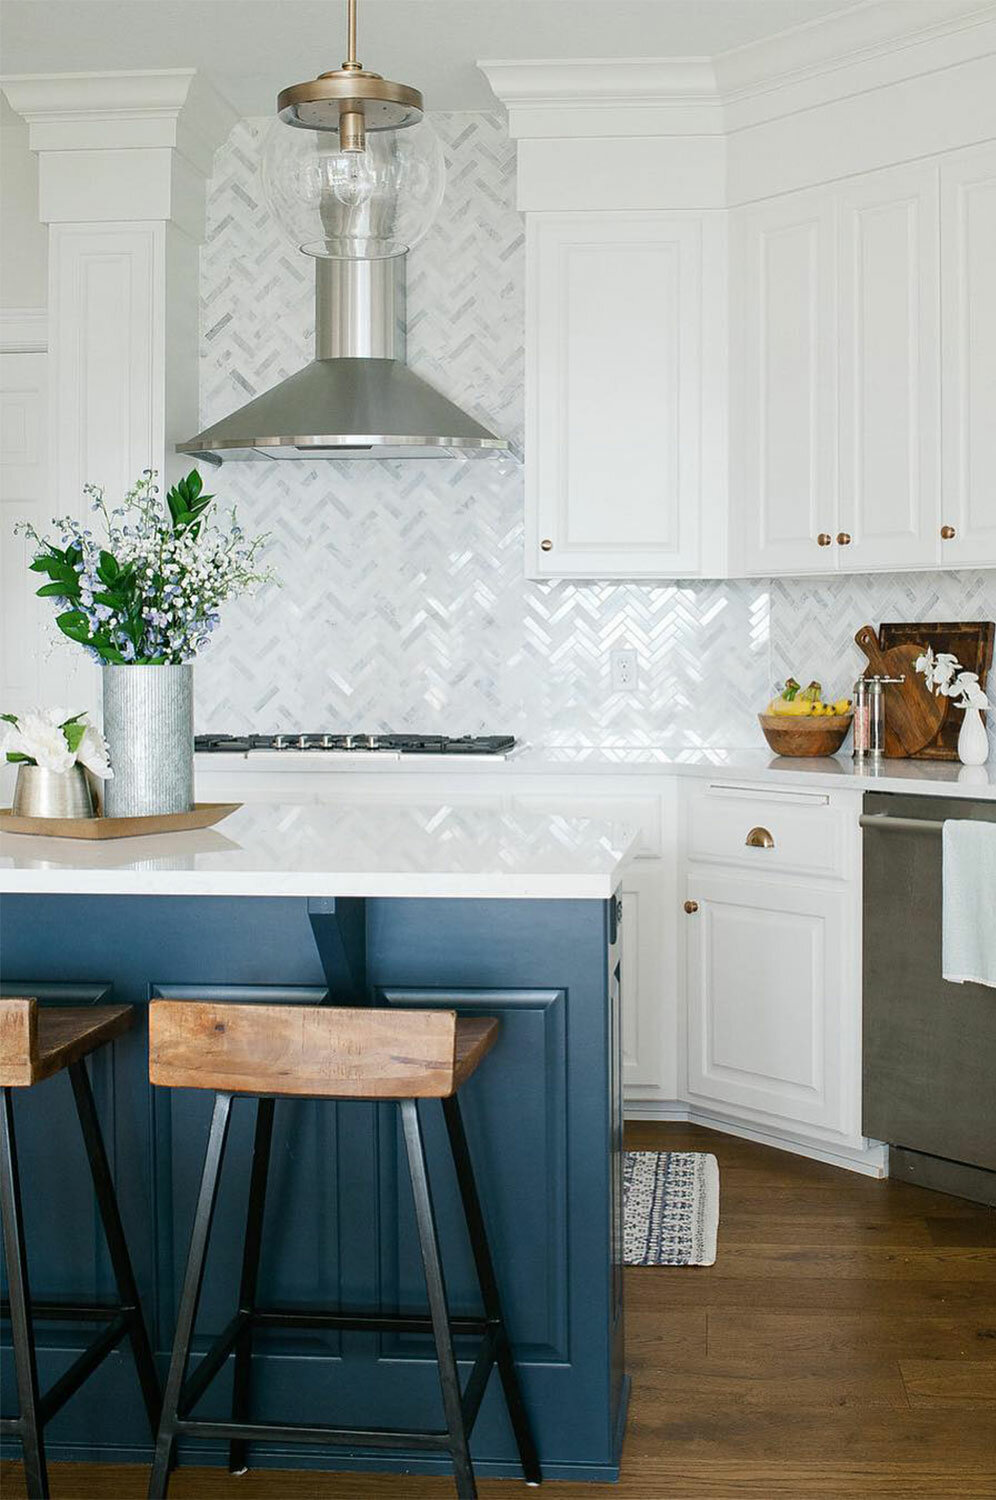 10 Kitchen Tile Ideas You Ll Want To Copy Asap With Photos